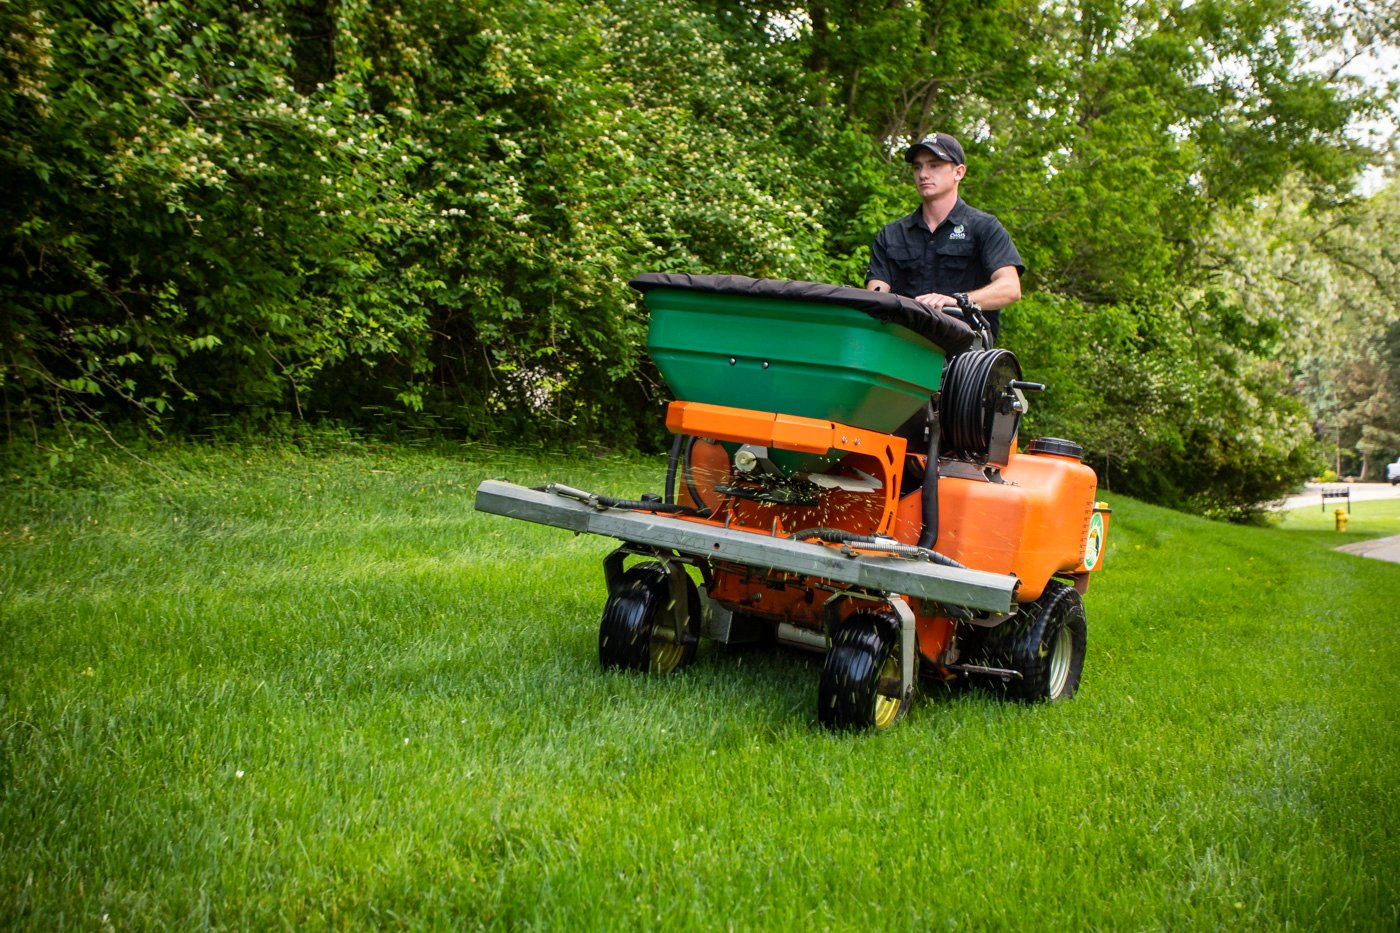 Oasis Lawn Care technician applying granular fertilizer with top-quality equipment